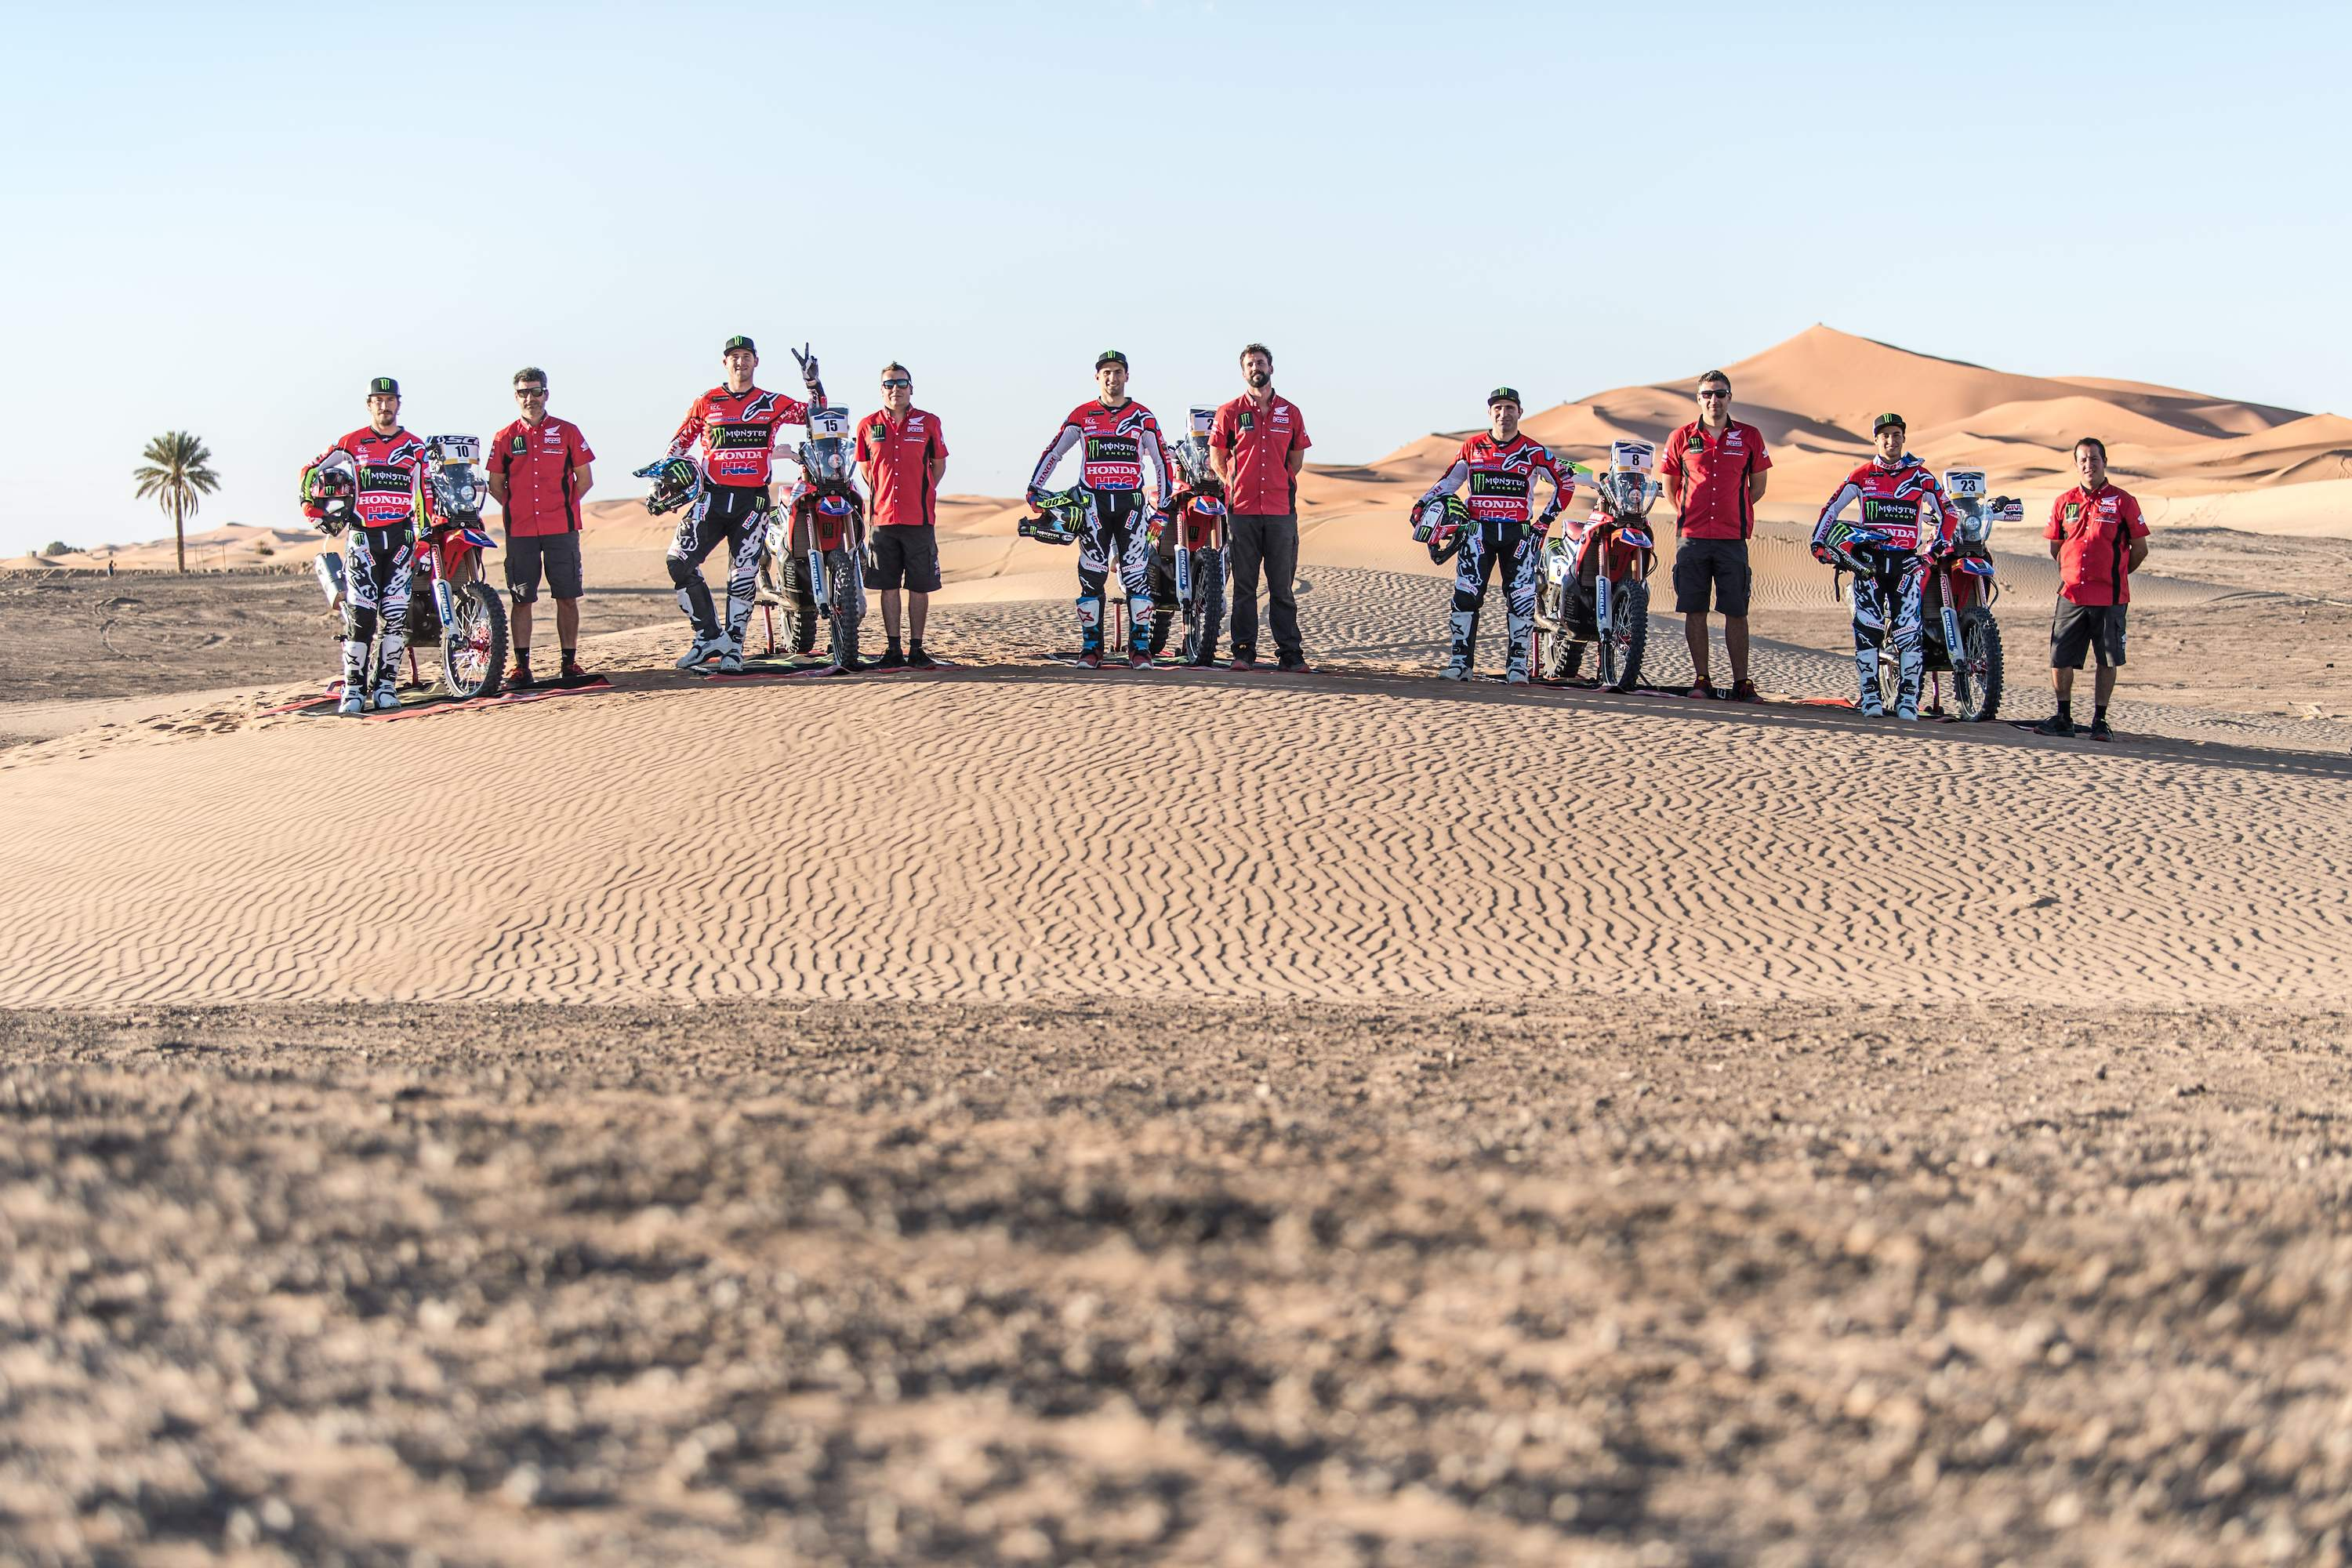 A team manager in the desert